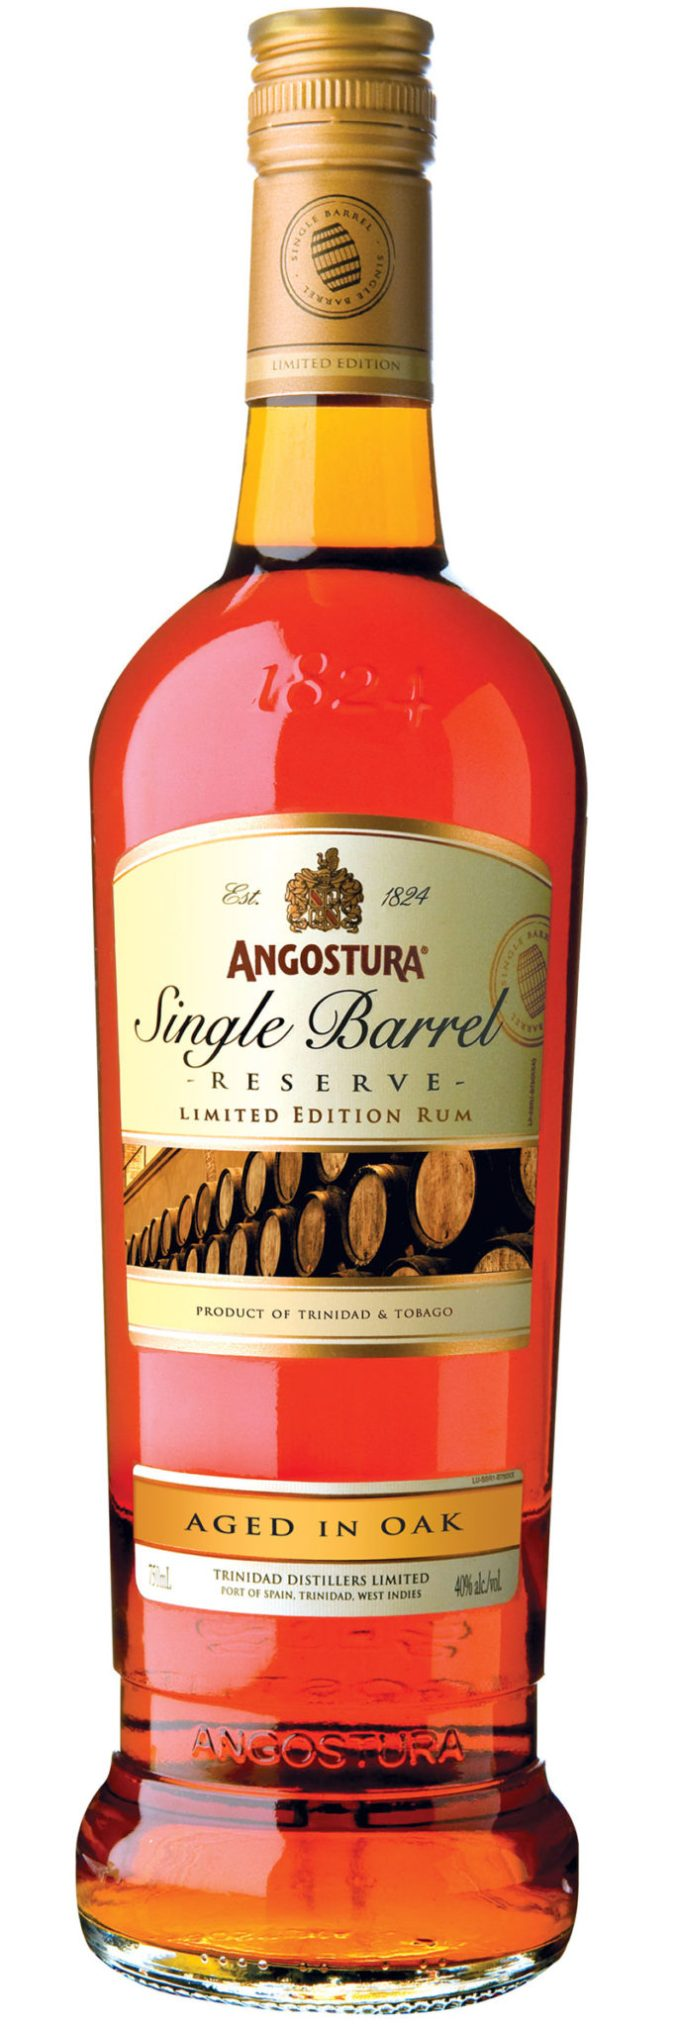 Angostura Single Barrel Reserve Limited Edition aged rum from Trinidad